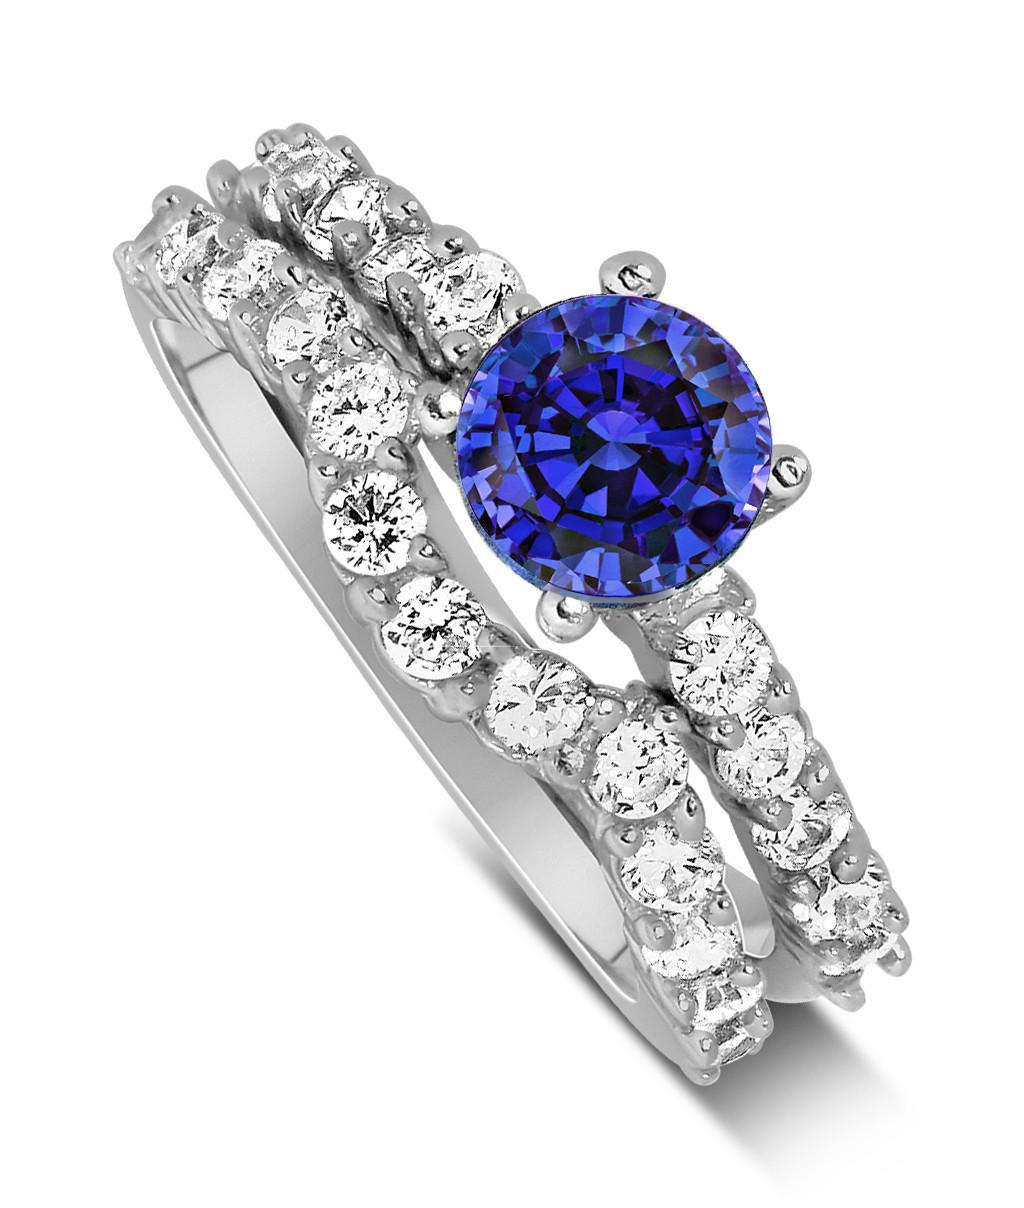 Sapphire Engagement Ring And Wedding Band Set 2 Carat Vintage Round Cut Blue Sapphire And Diamond